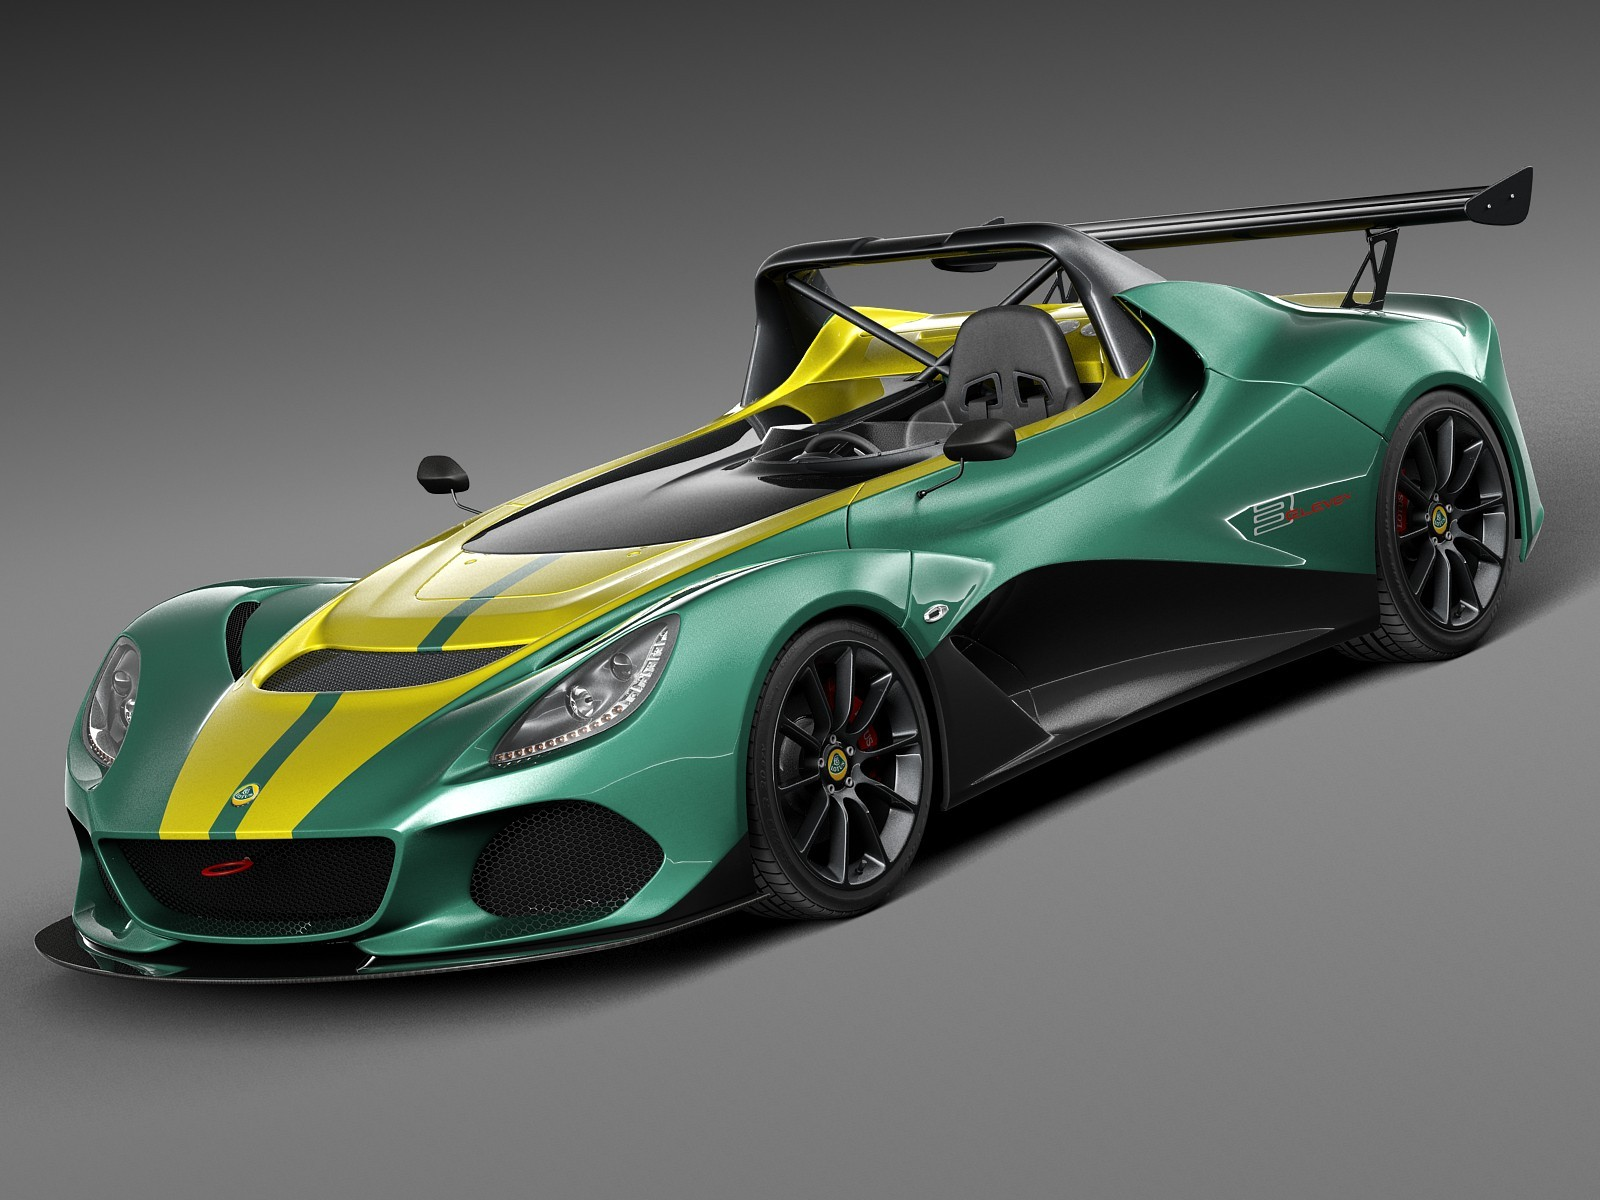 Lotus Super 7 >> First Lotus 3-Eleven & Elise Cup 250 Cars Are Finally Ready for Customers | Lotus | SuperCars.net